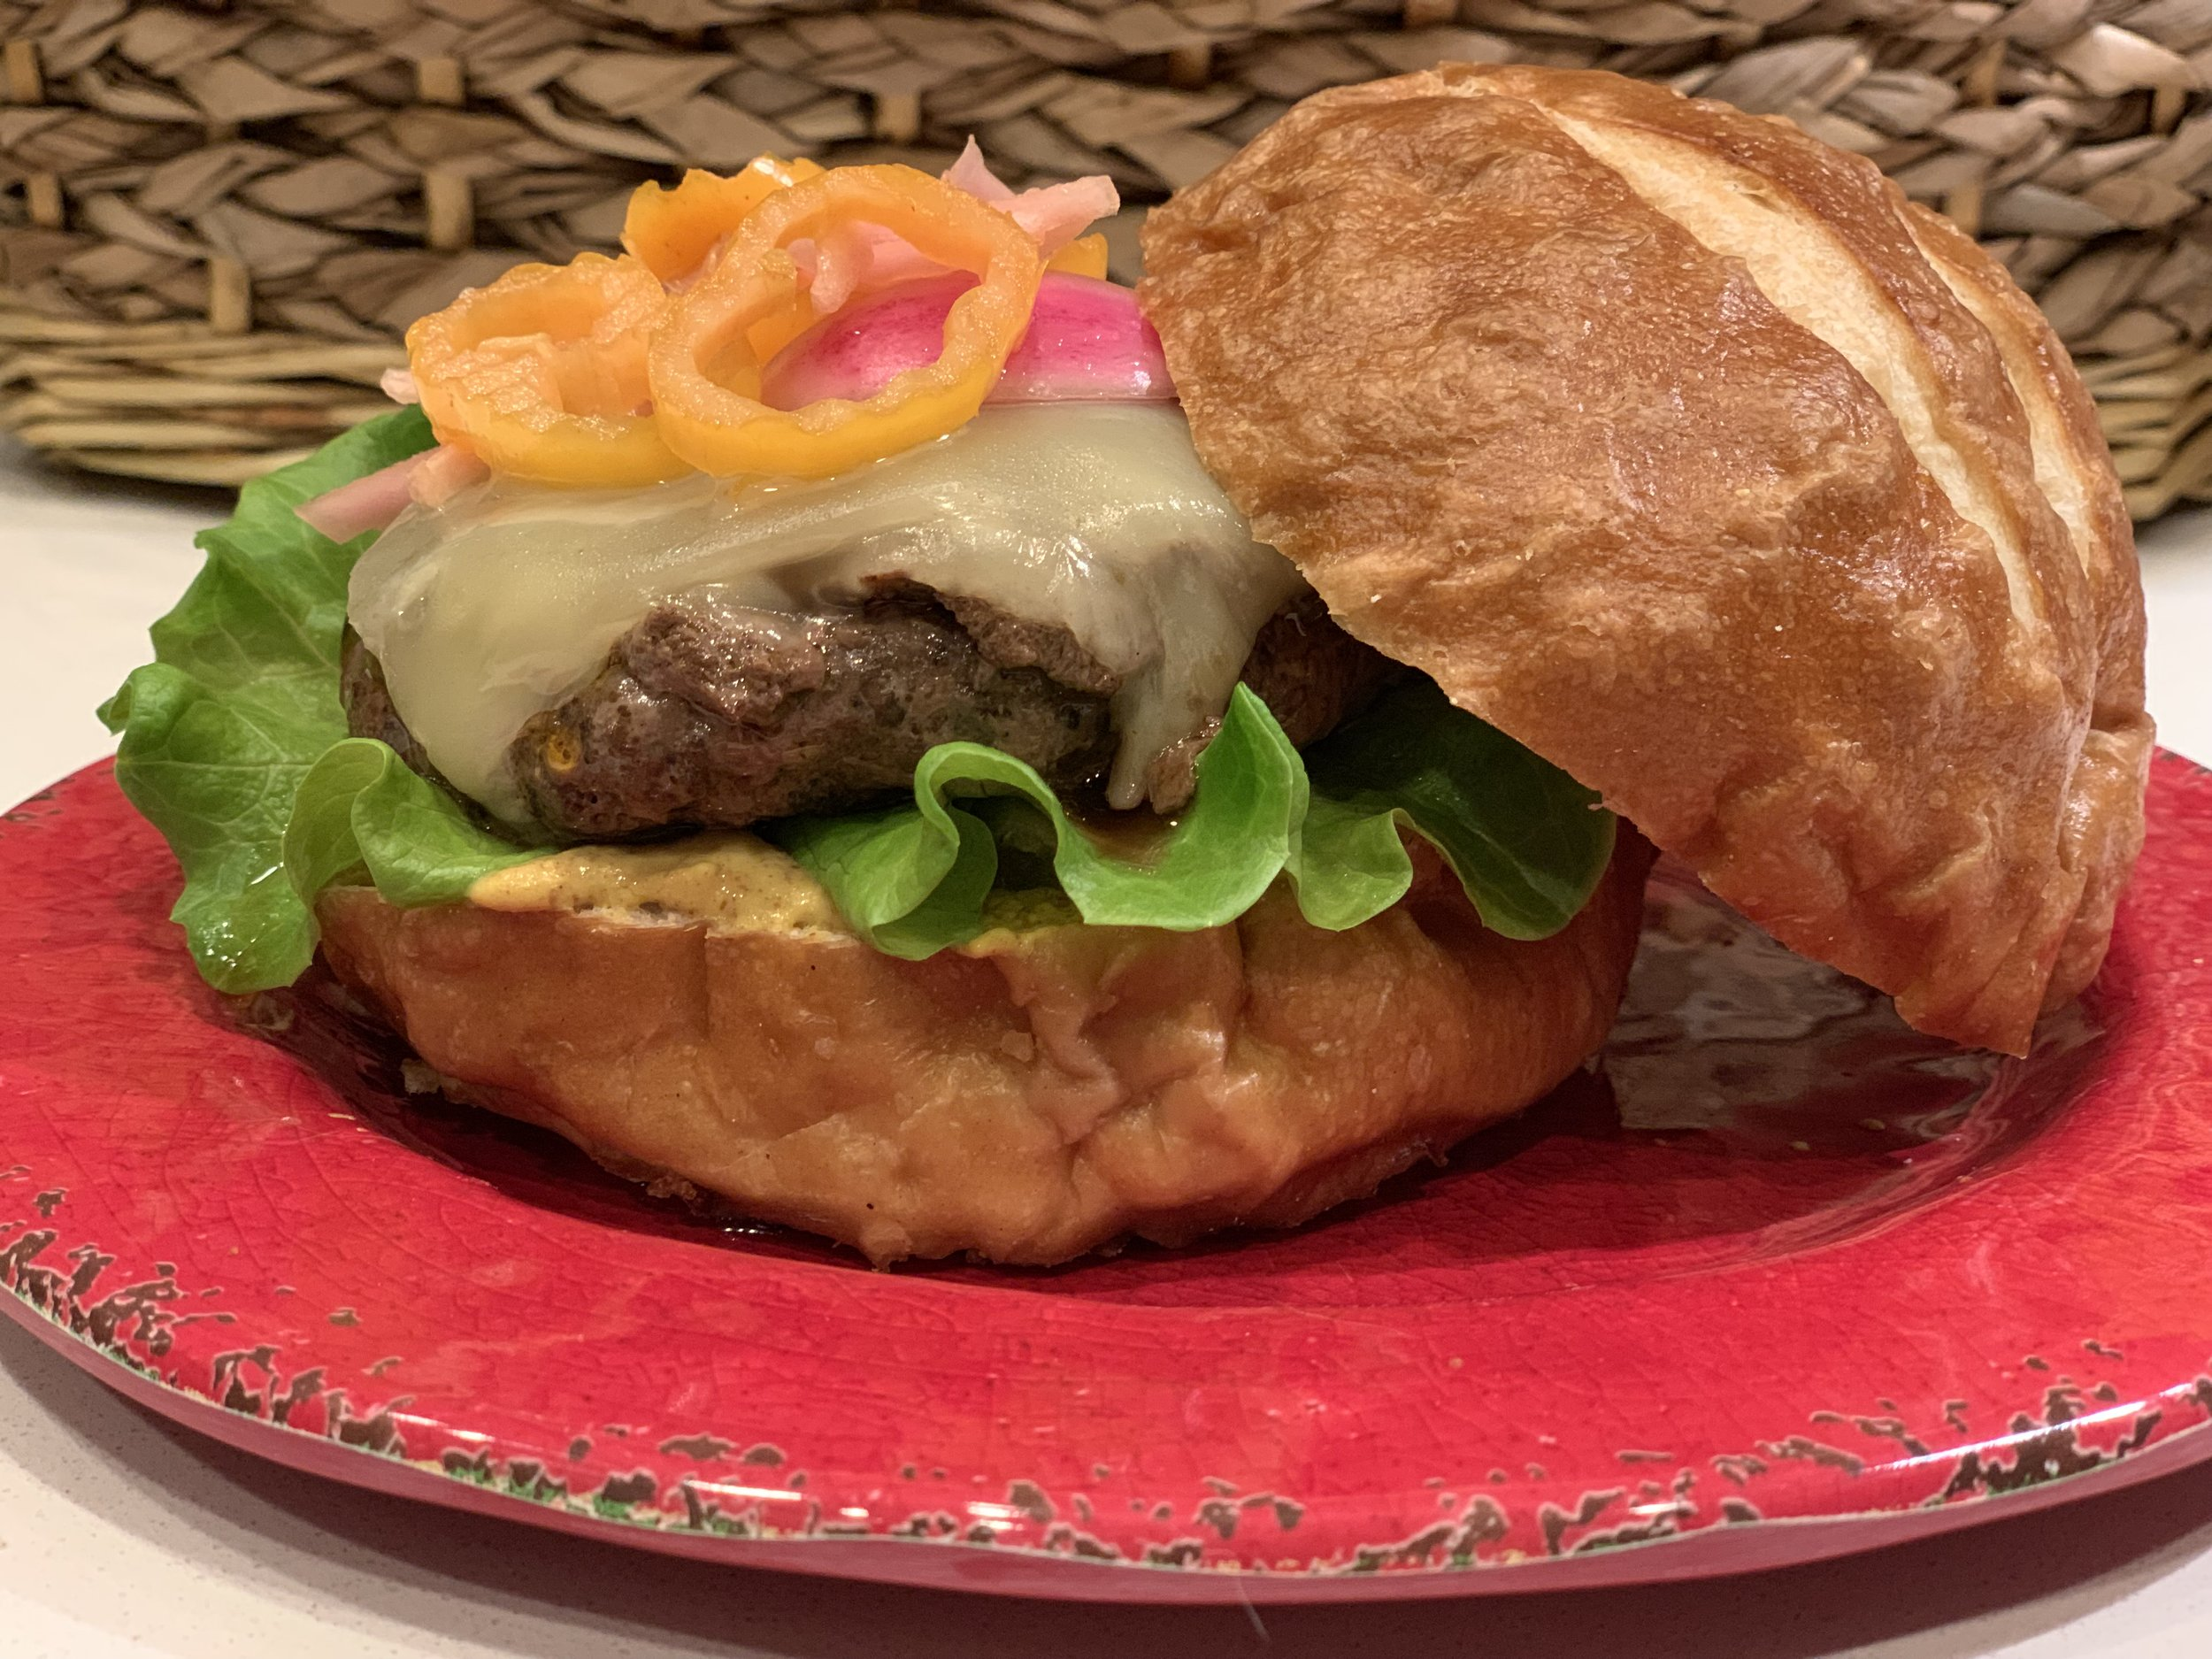 Blended Beef Burger Time with Grateful Burgers| The Tish Kitchen | Food & Lifestyle Blogger